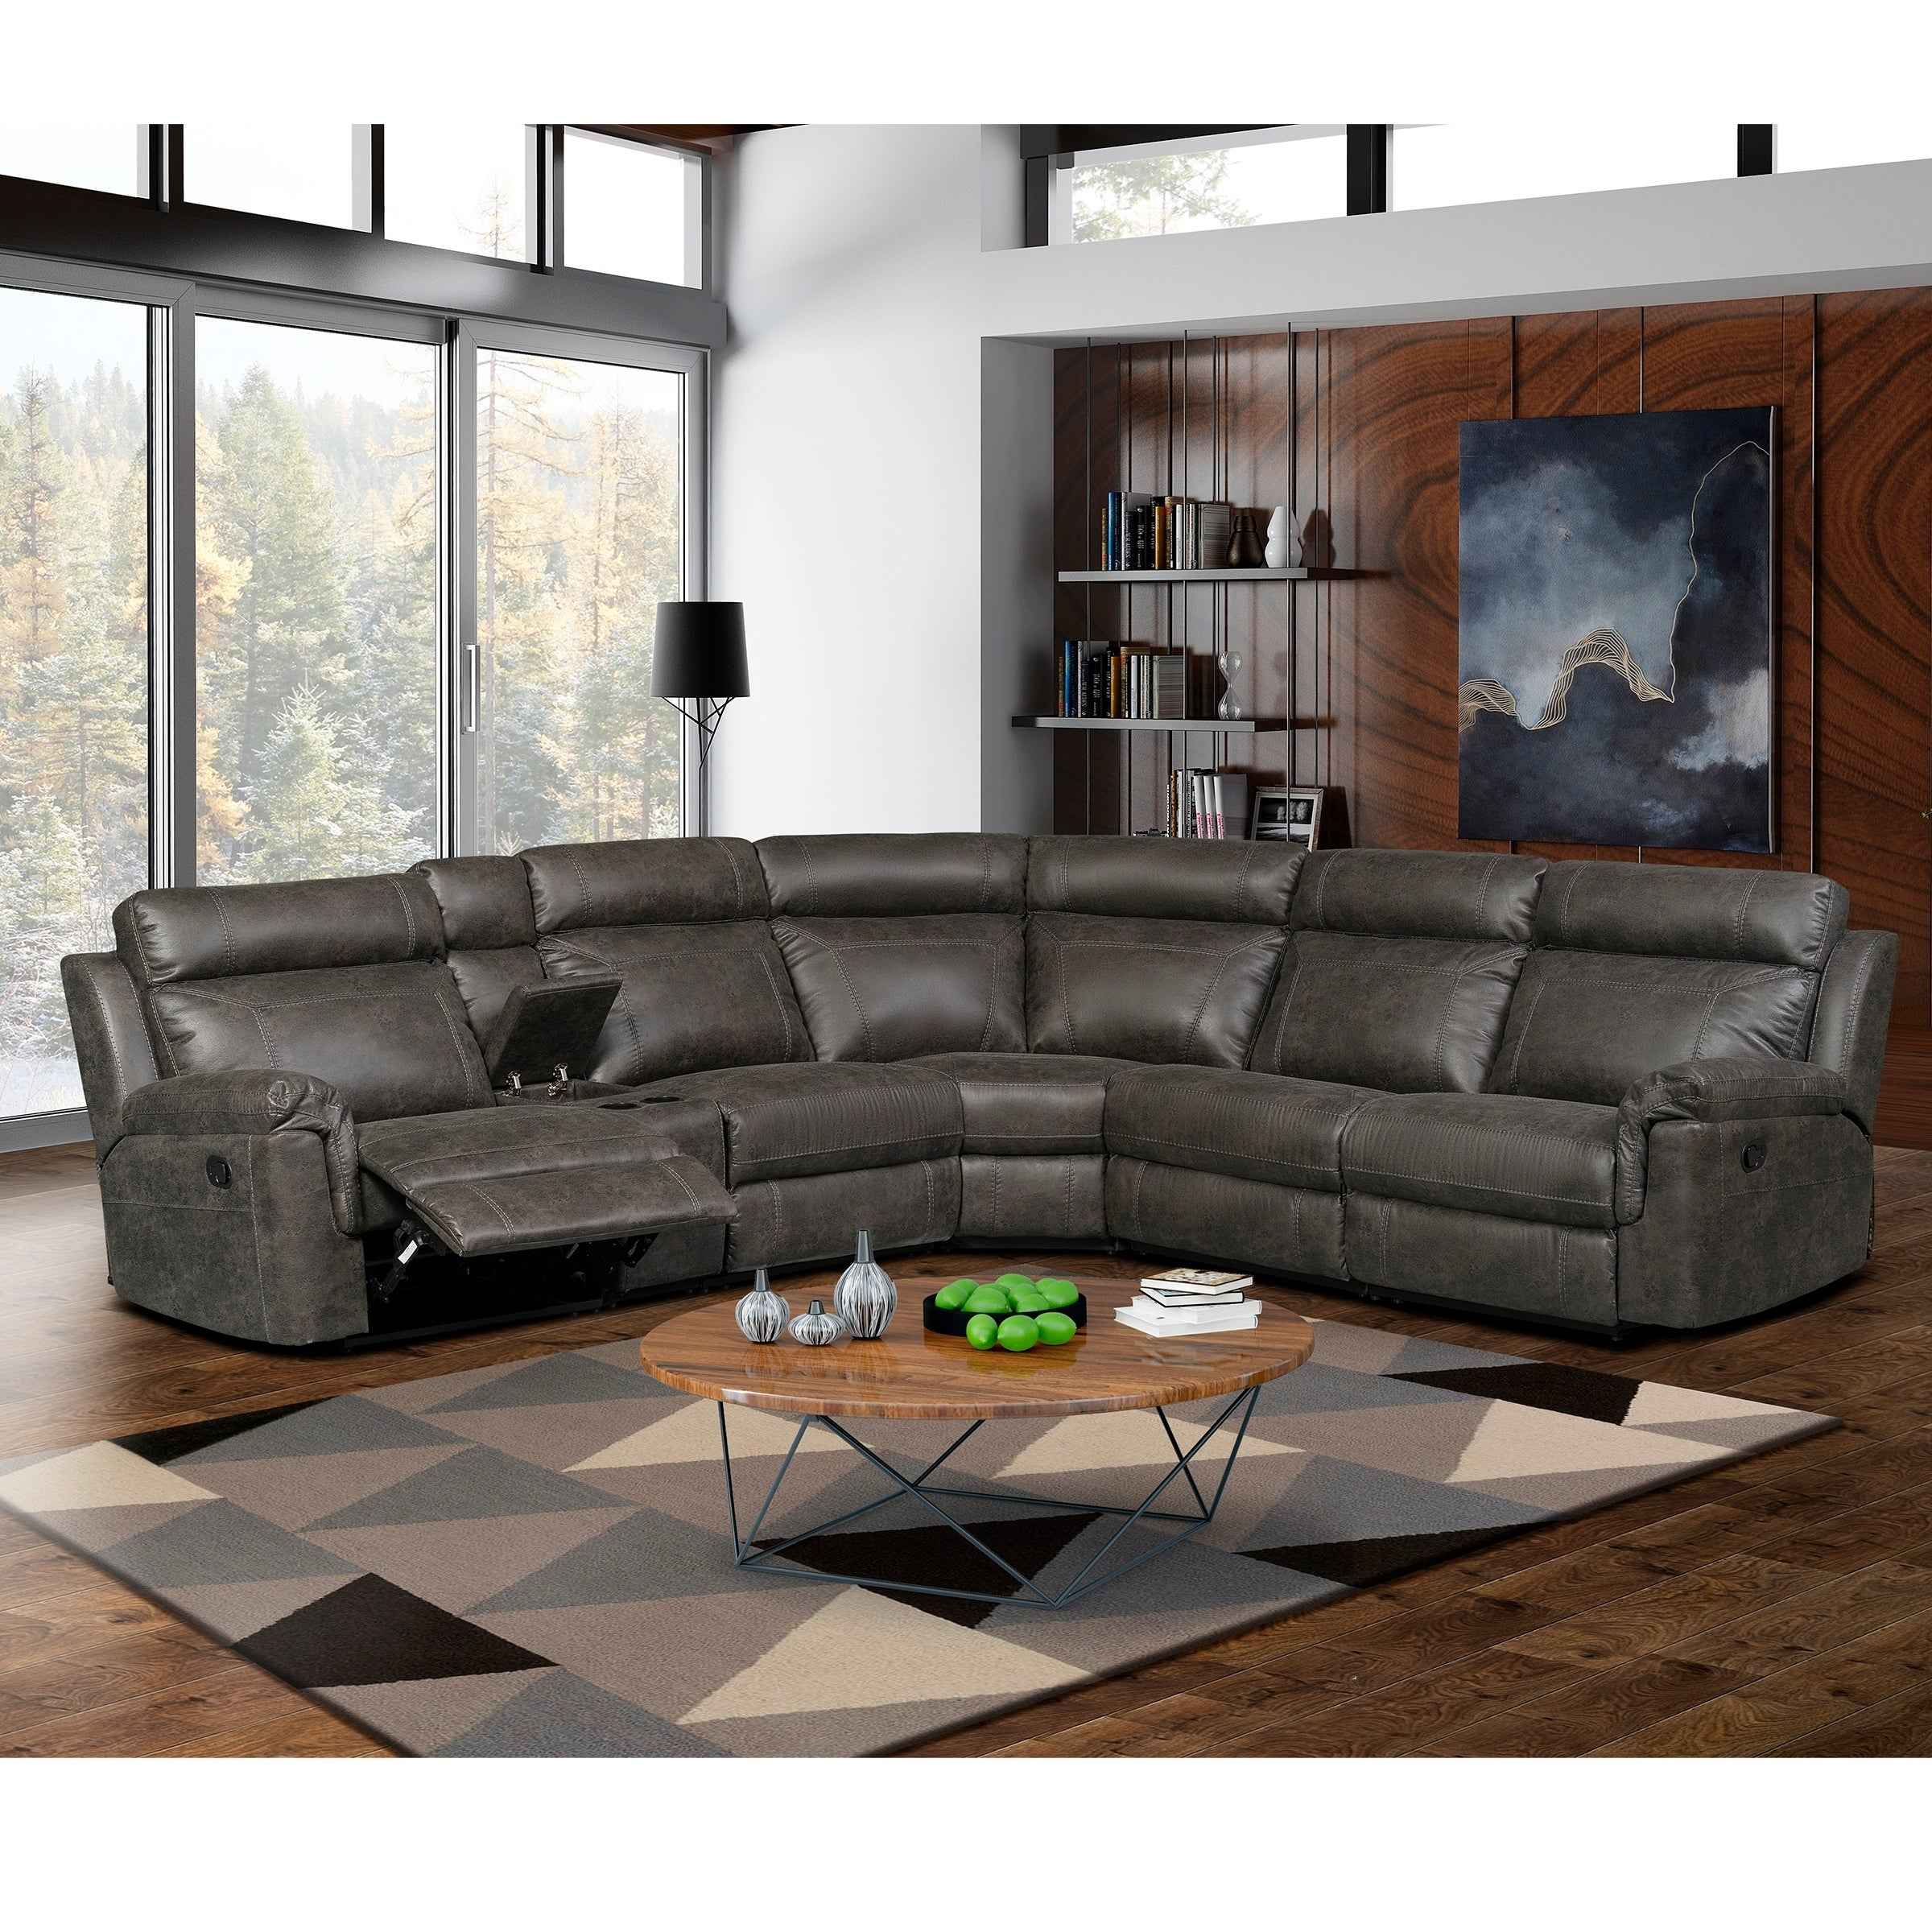 Buy Faux Leather Sectional Sofas Online at Overstock | Our ...